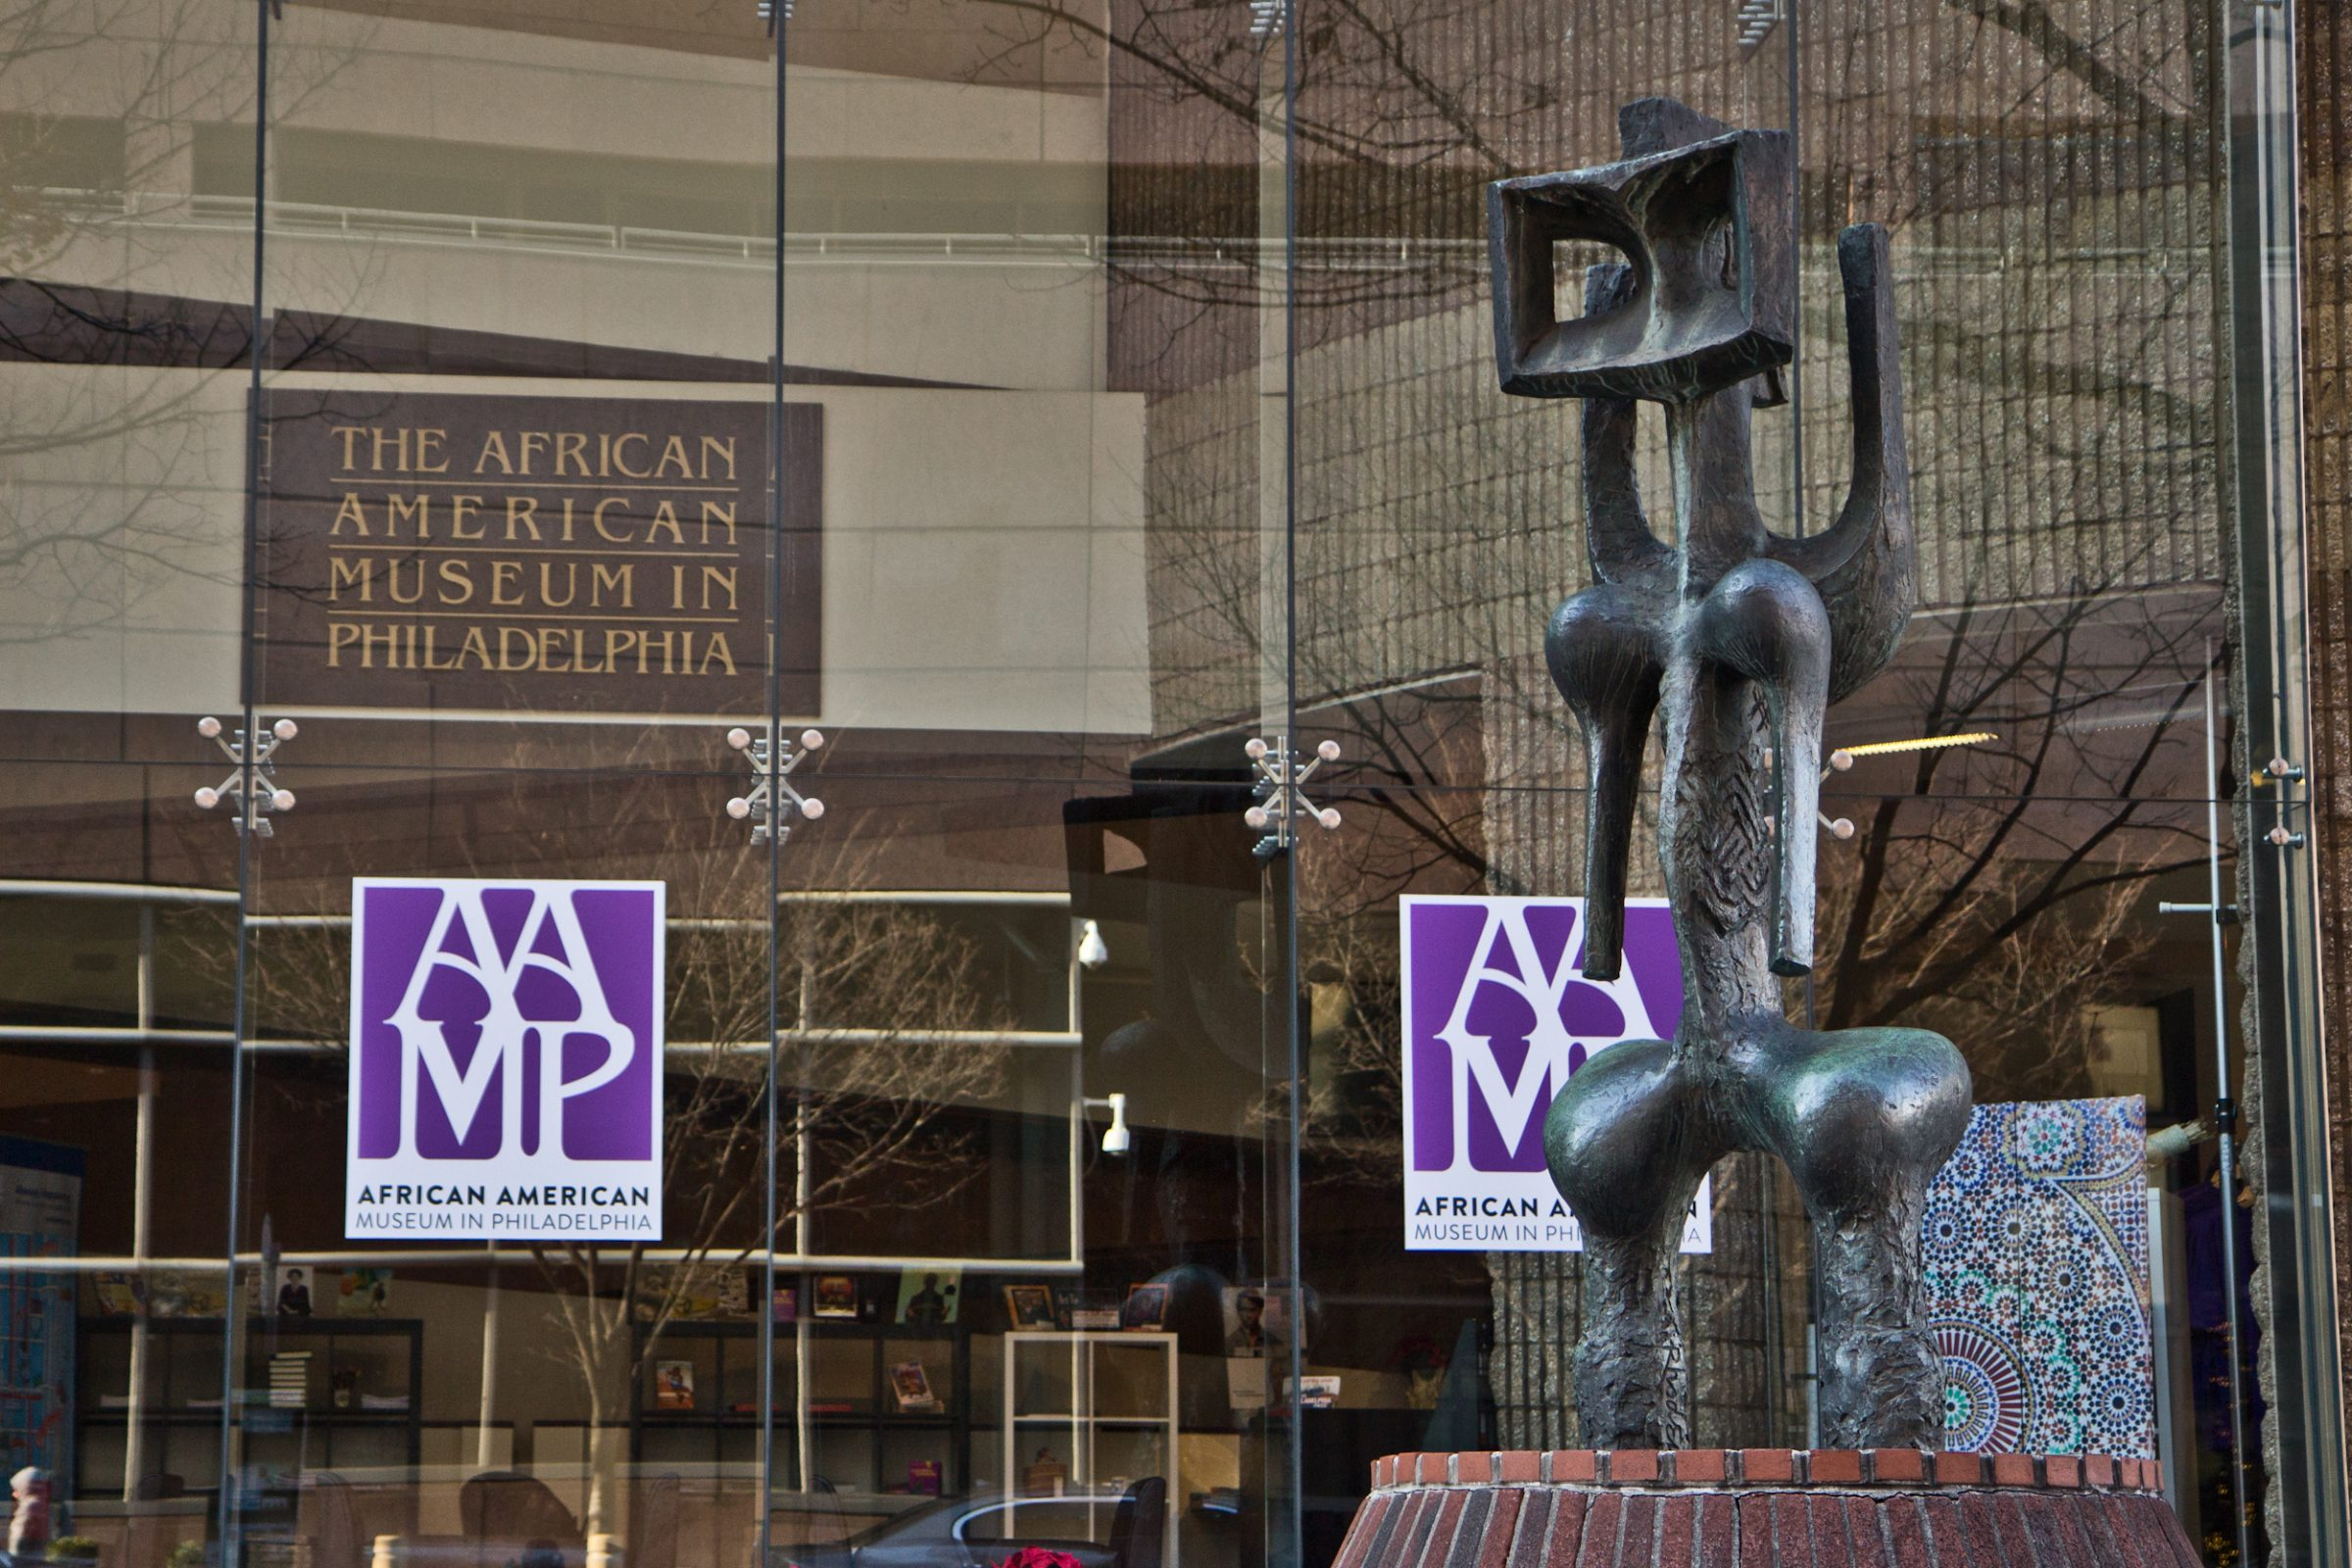 John Rhoden sculpture displayed outside the African American Museum in Philadelphia.